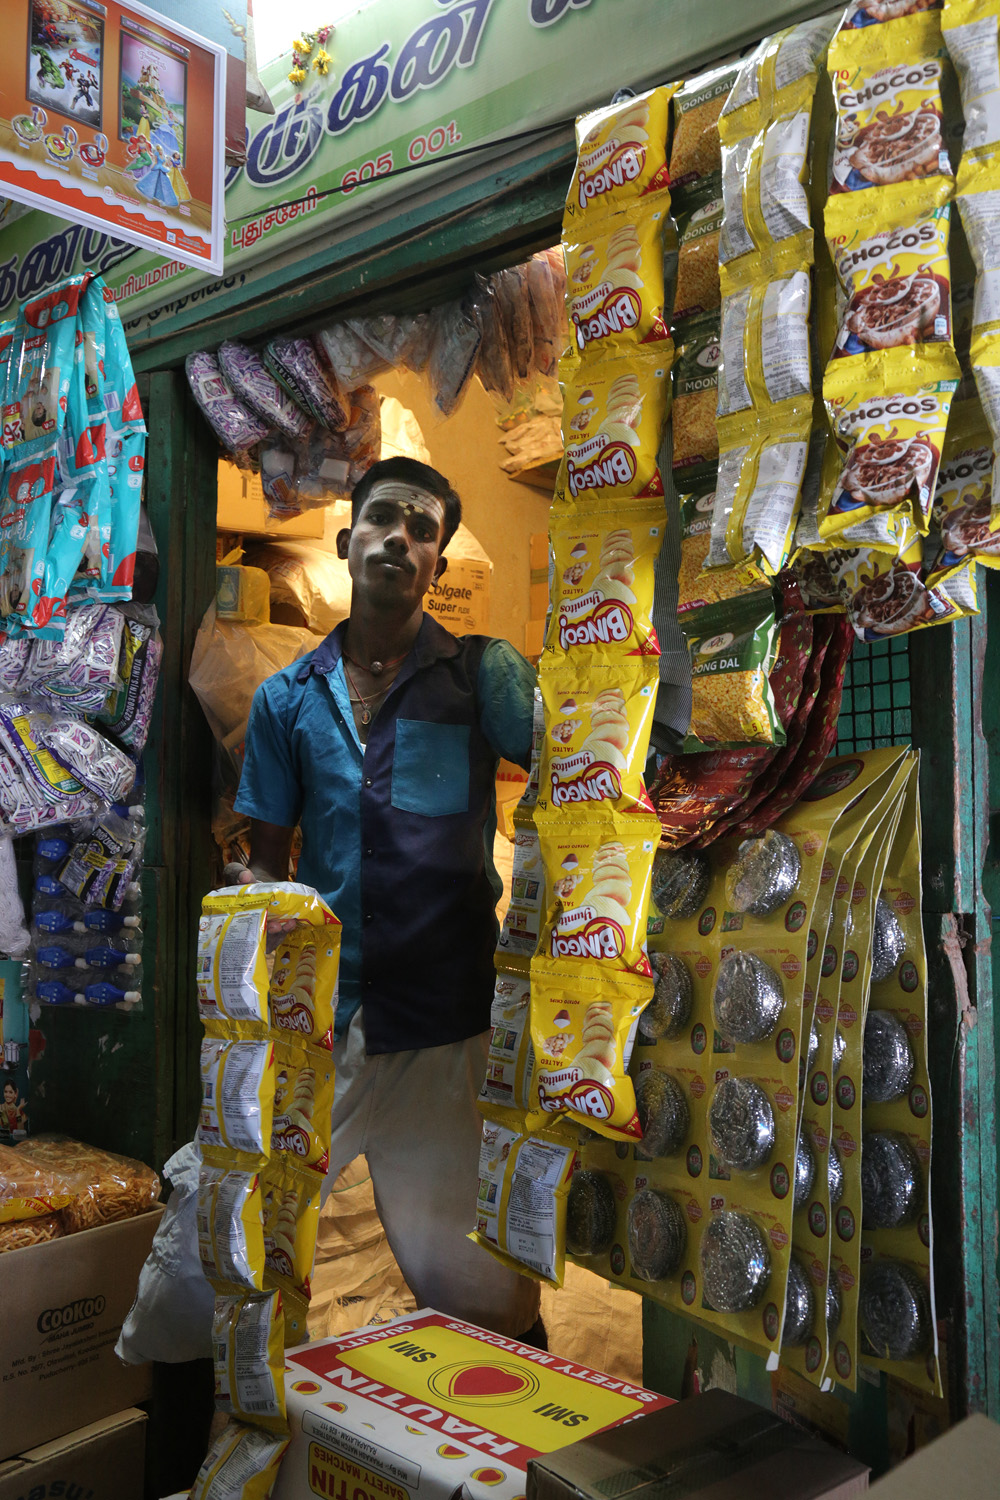 18-bingo Snack food vendor, 